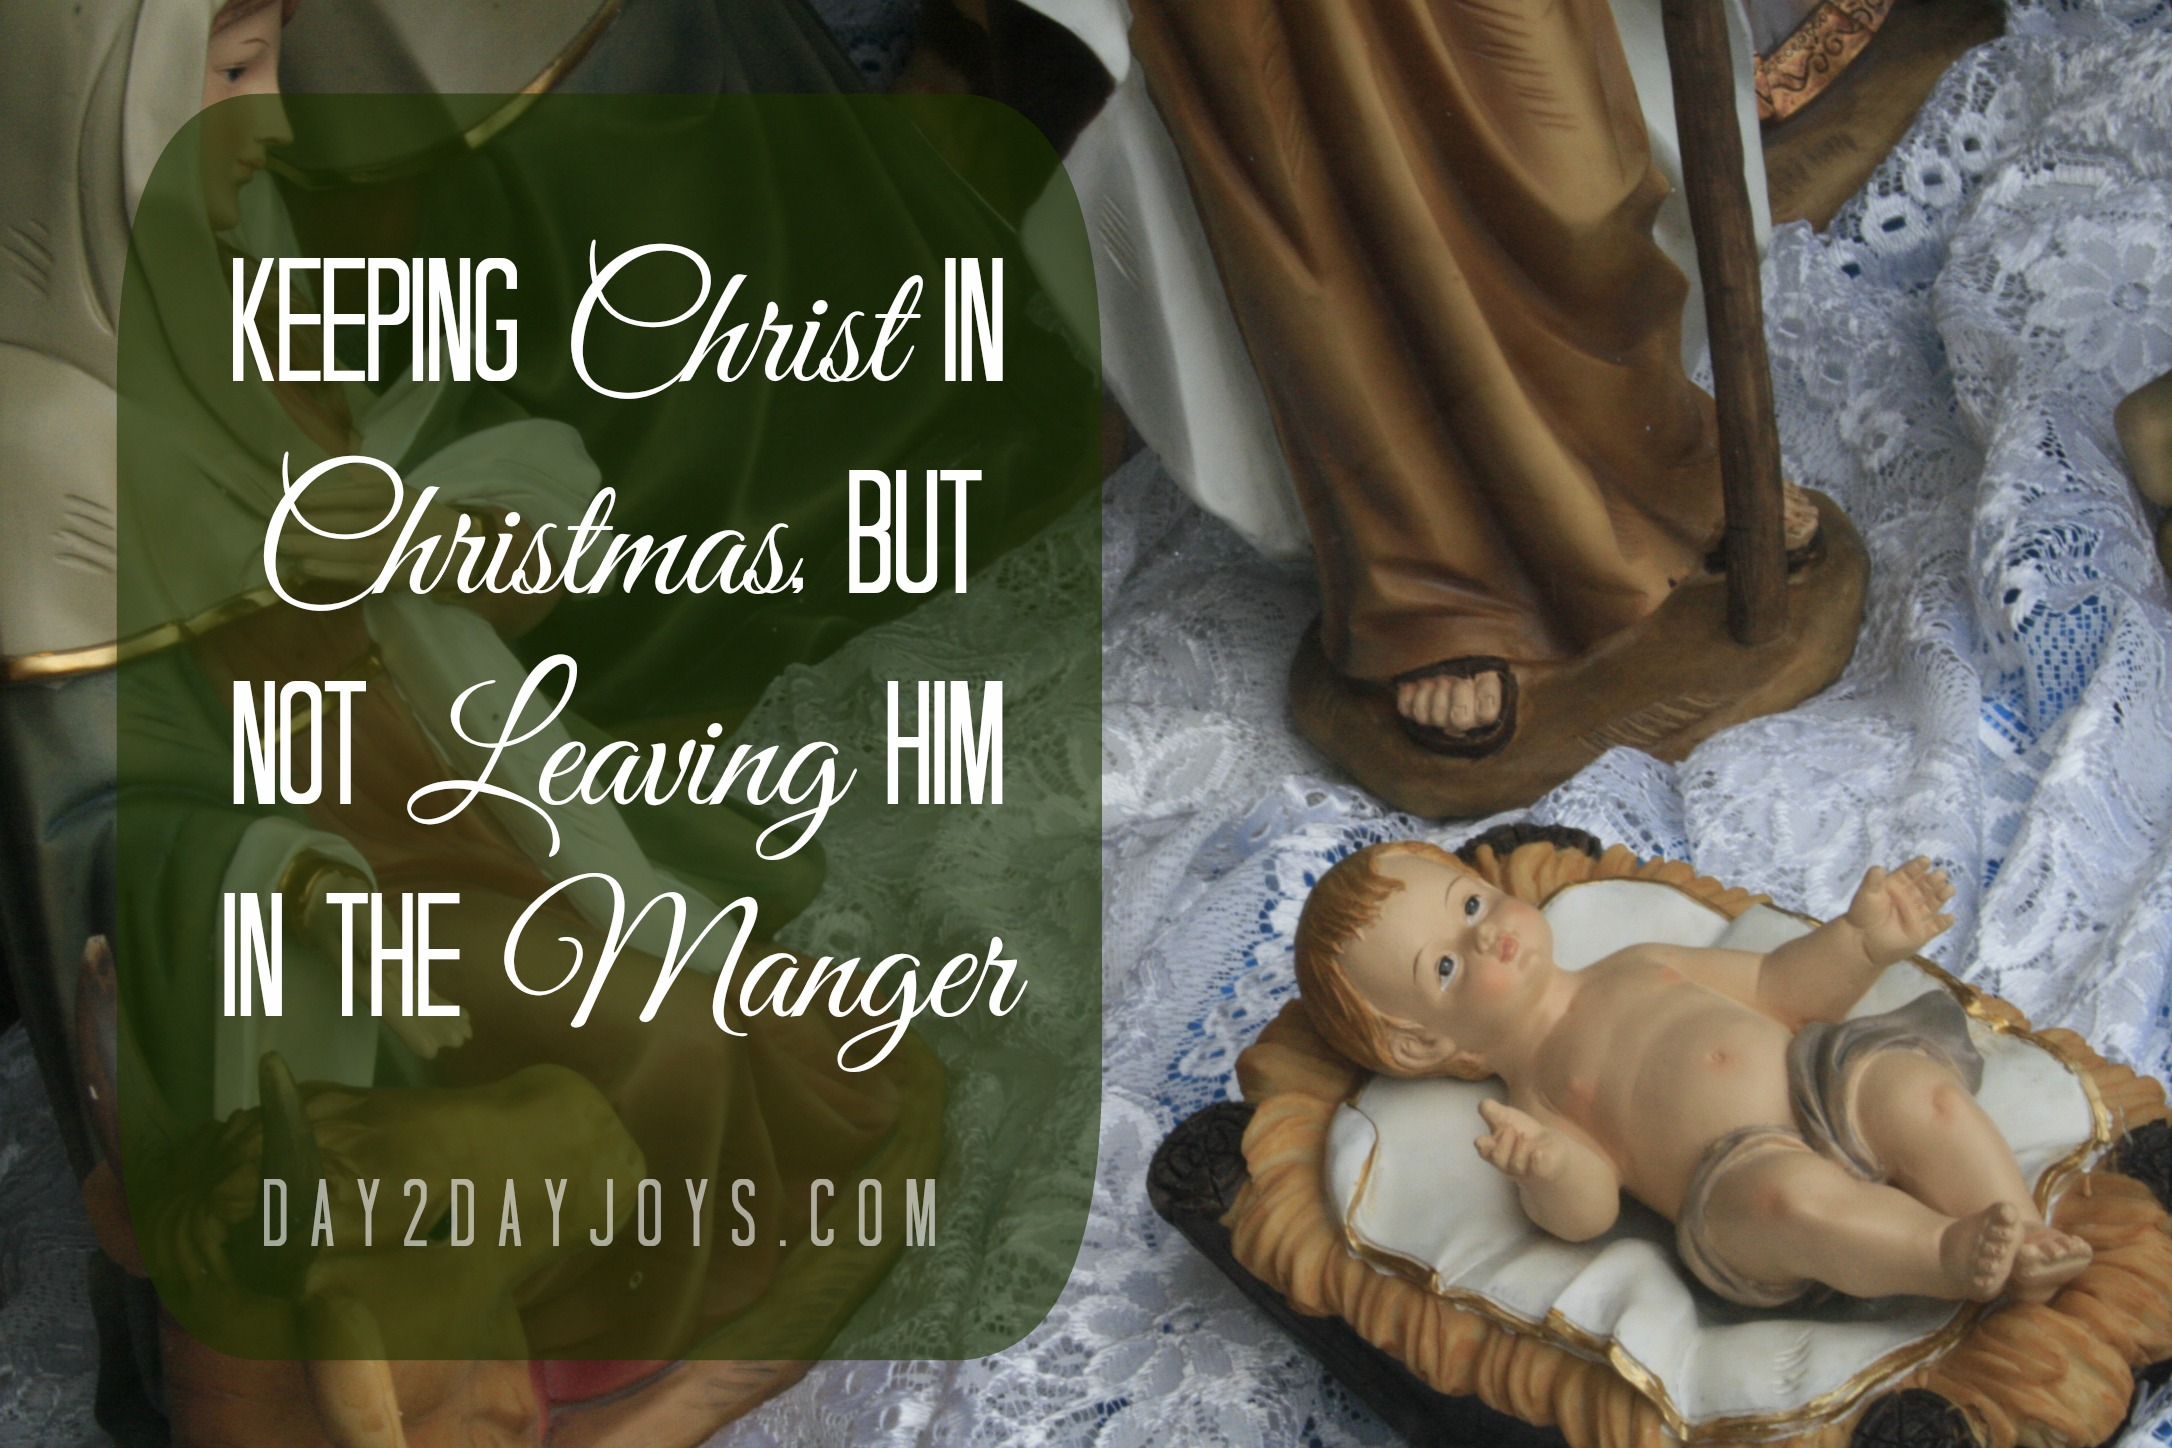 Keeping Christ in Christmas but Not Leaving Him in the Manger, @ day2dayjoys.com